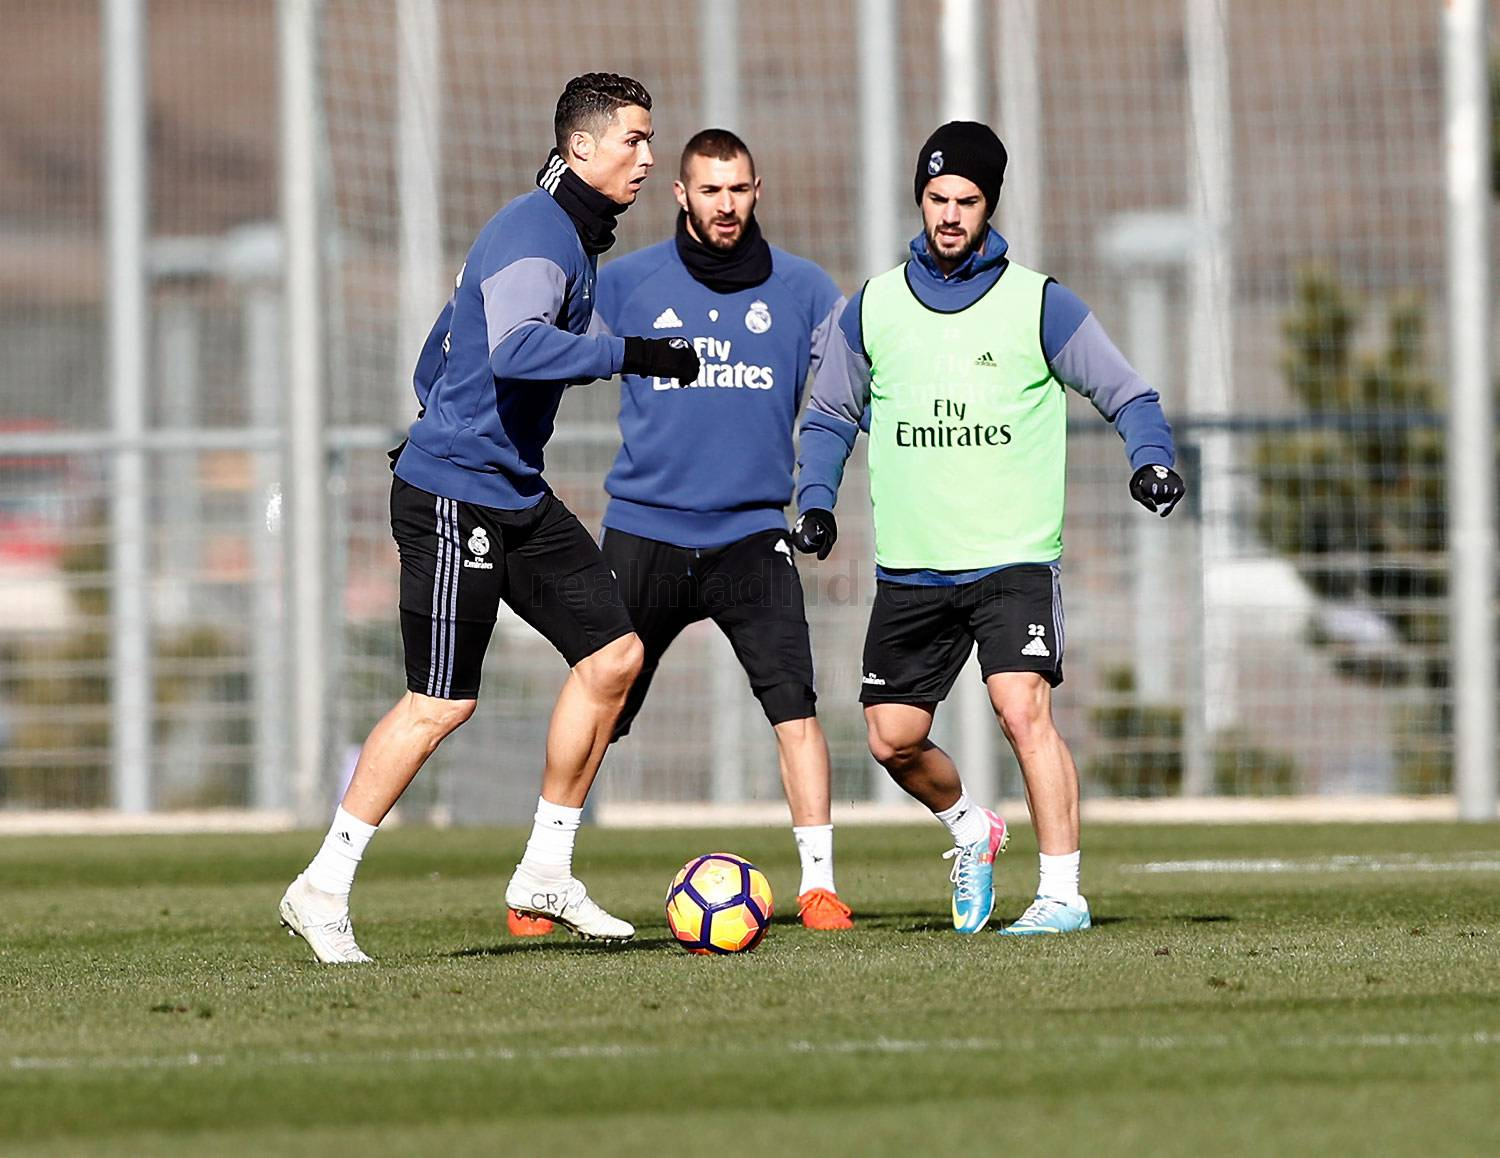 Real Madrid - Entrenamiento del Real Madrid - 28-01-2017